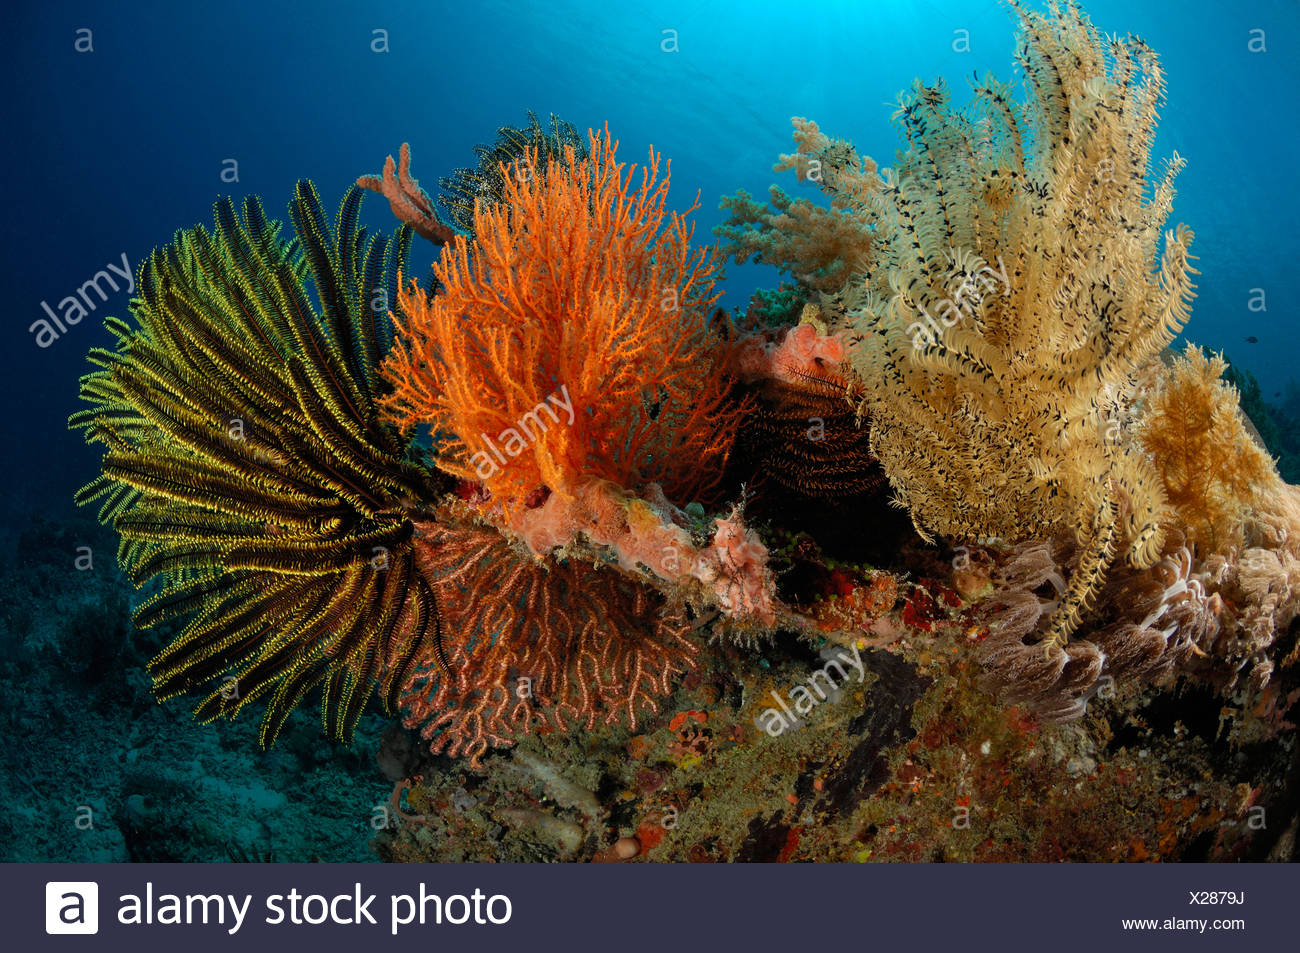 Feather Stars in Coral Reef, Comanthina sp., Alor, Indonesia - Stock Image